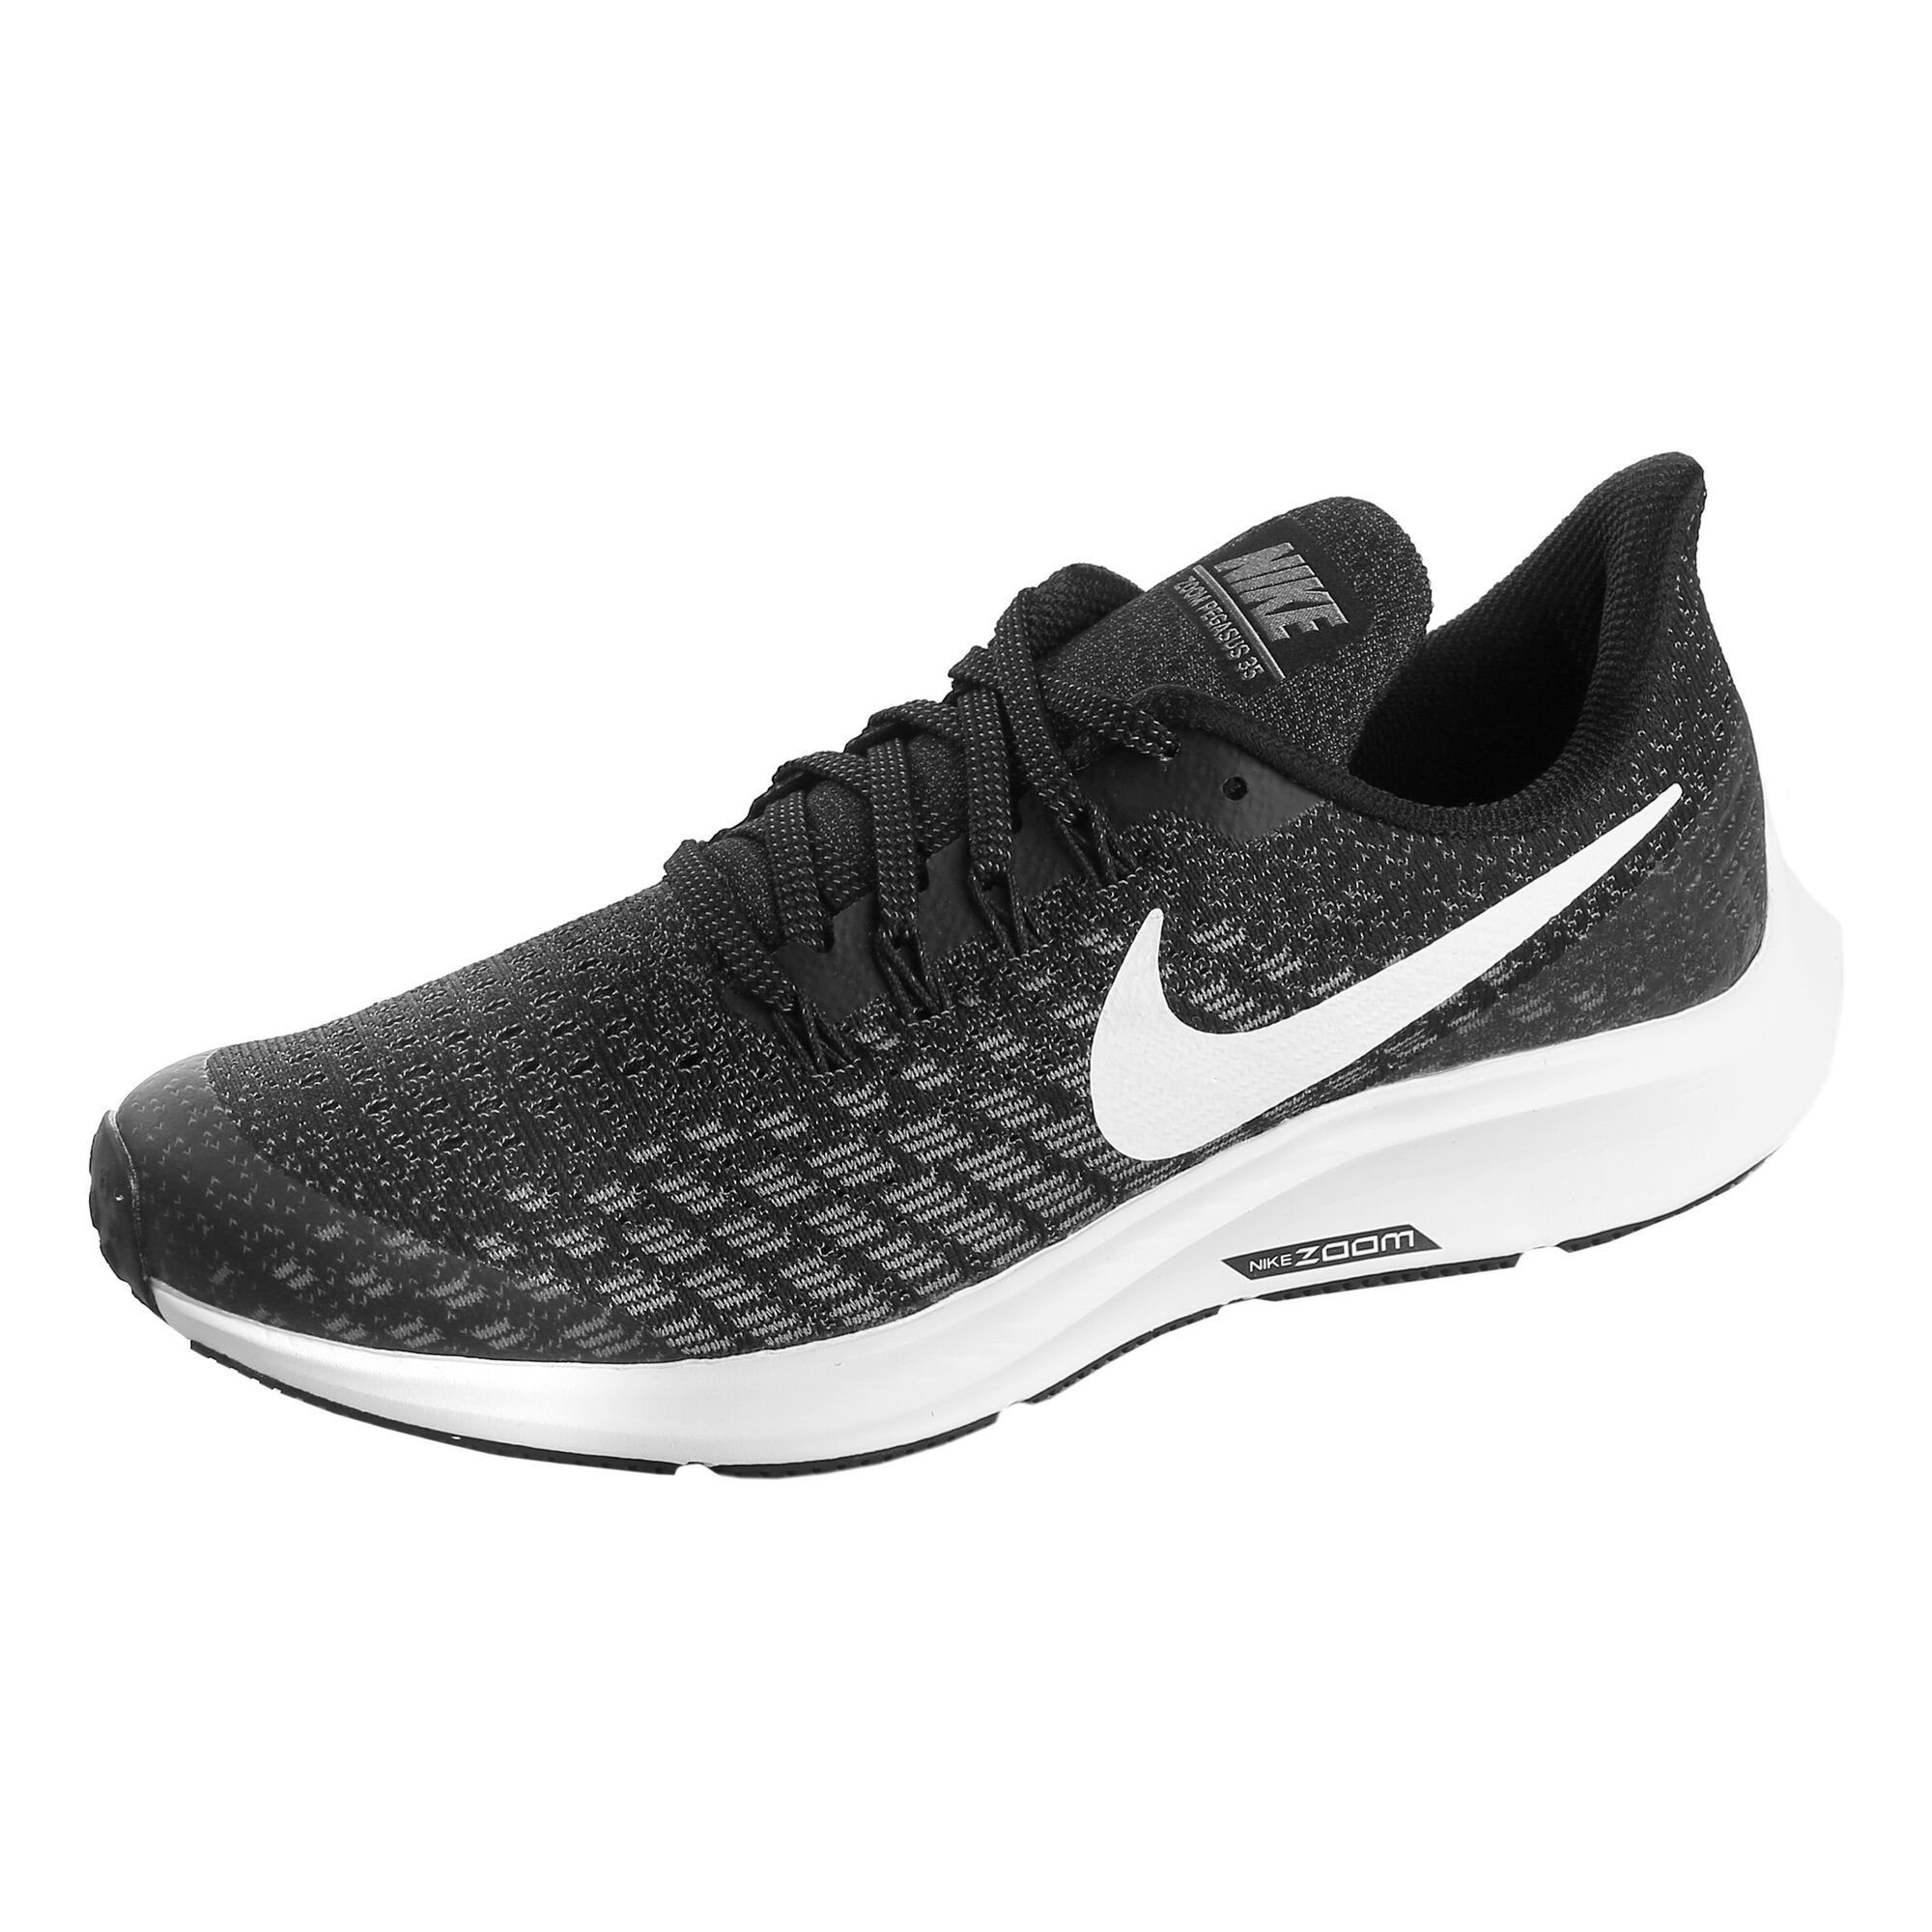 innovative design 74481 c1325 buy Nike Air Zoom Pegasus 35 GS Neutral Running Shoe Kids ...